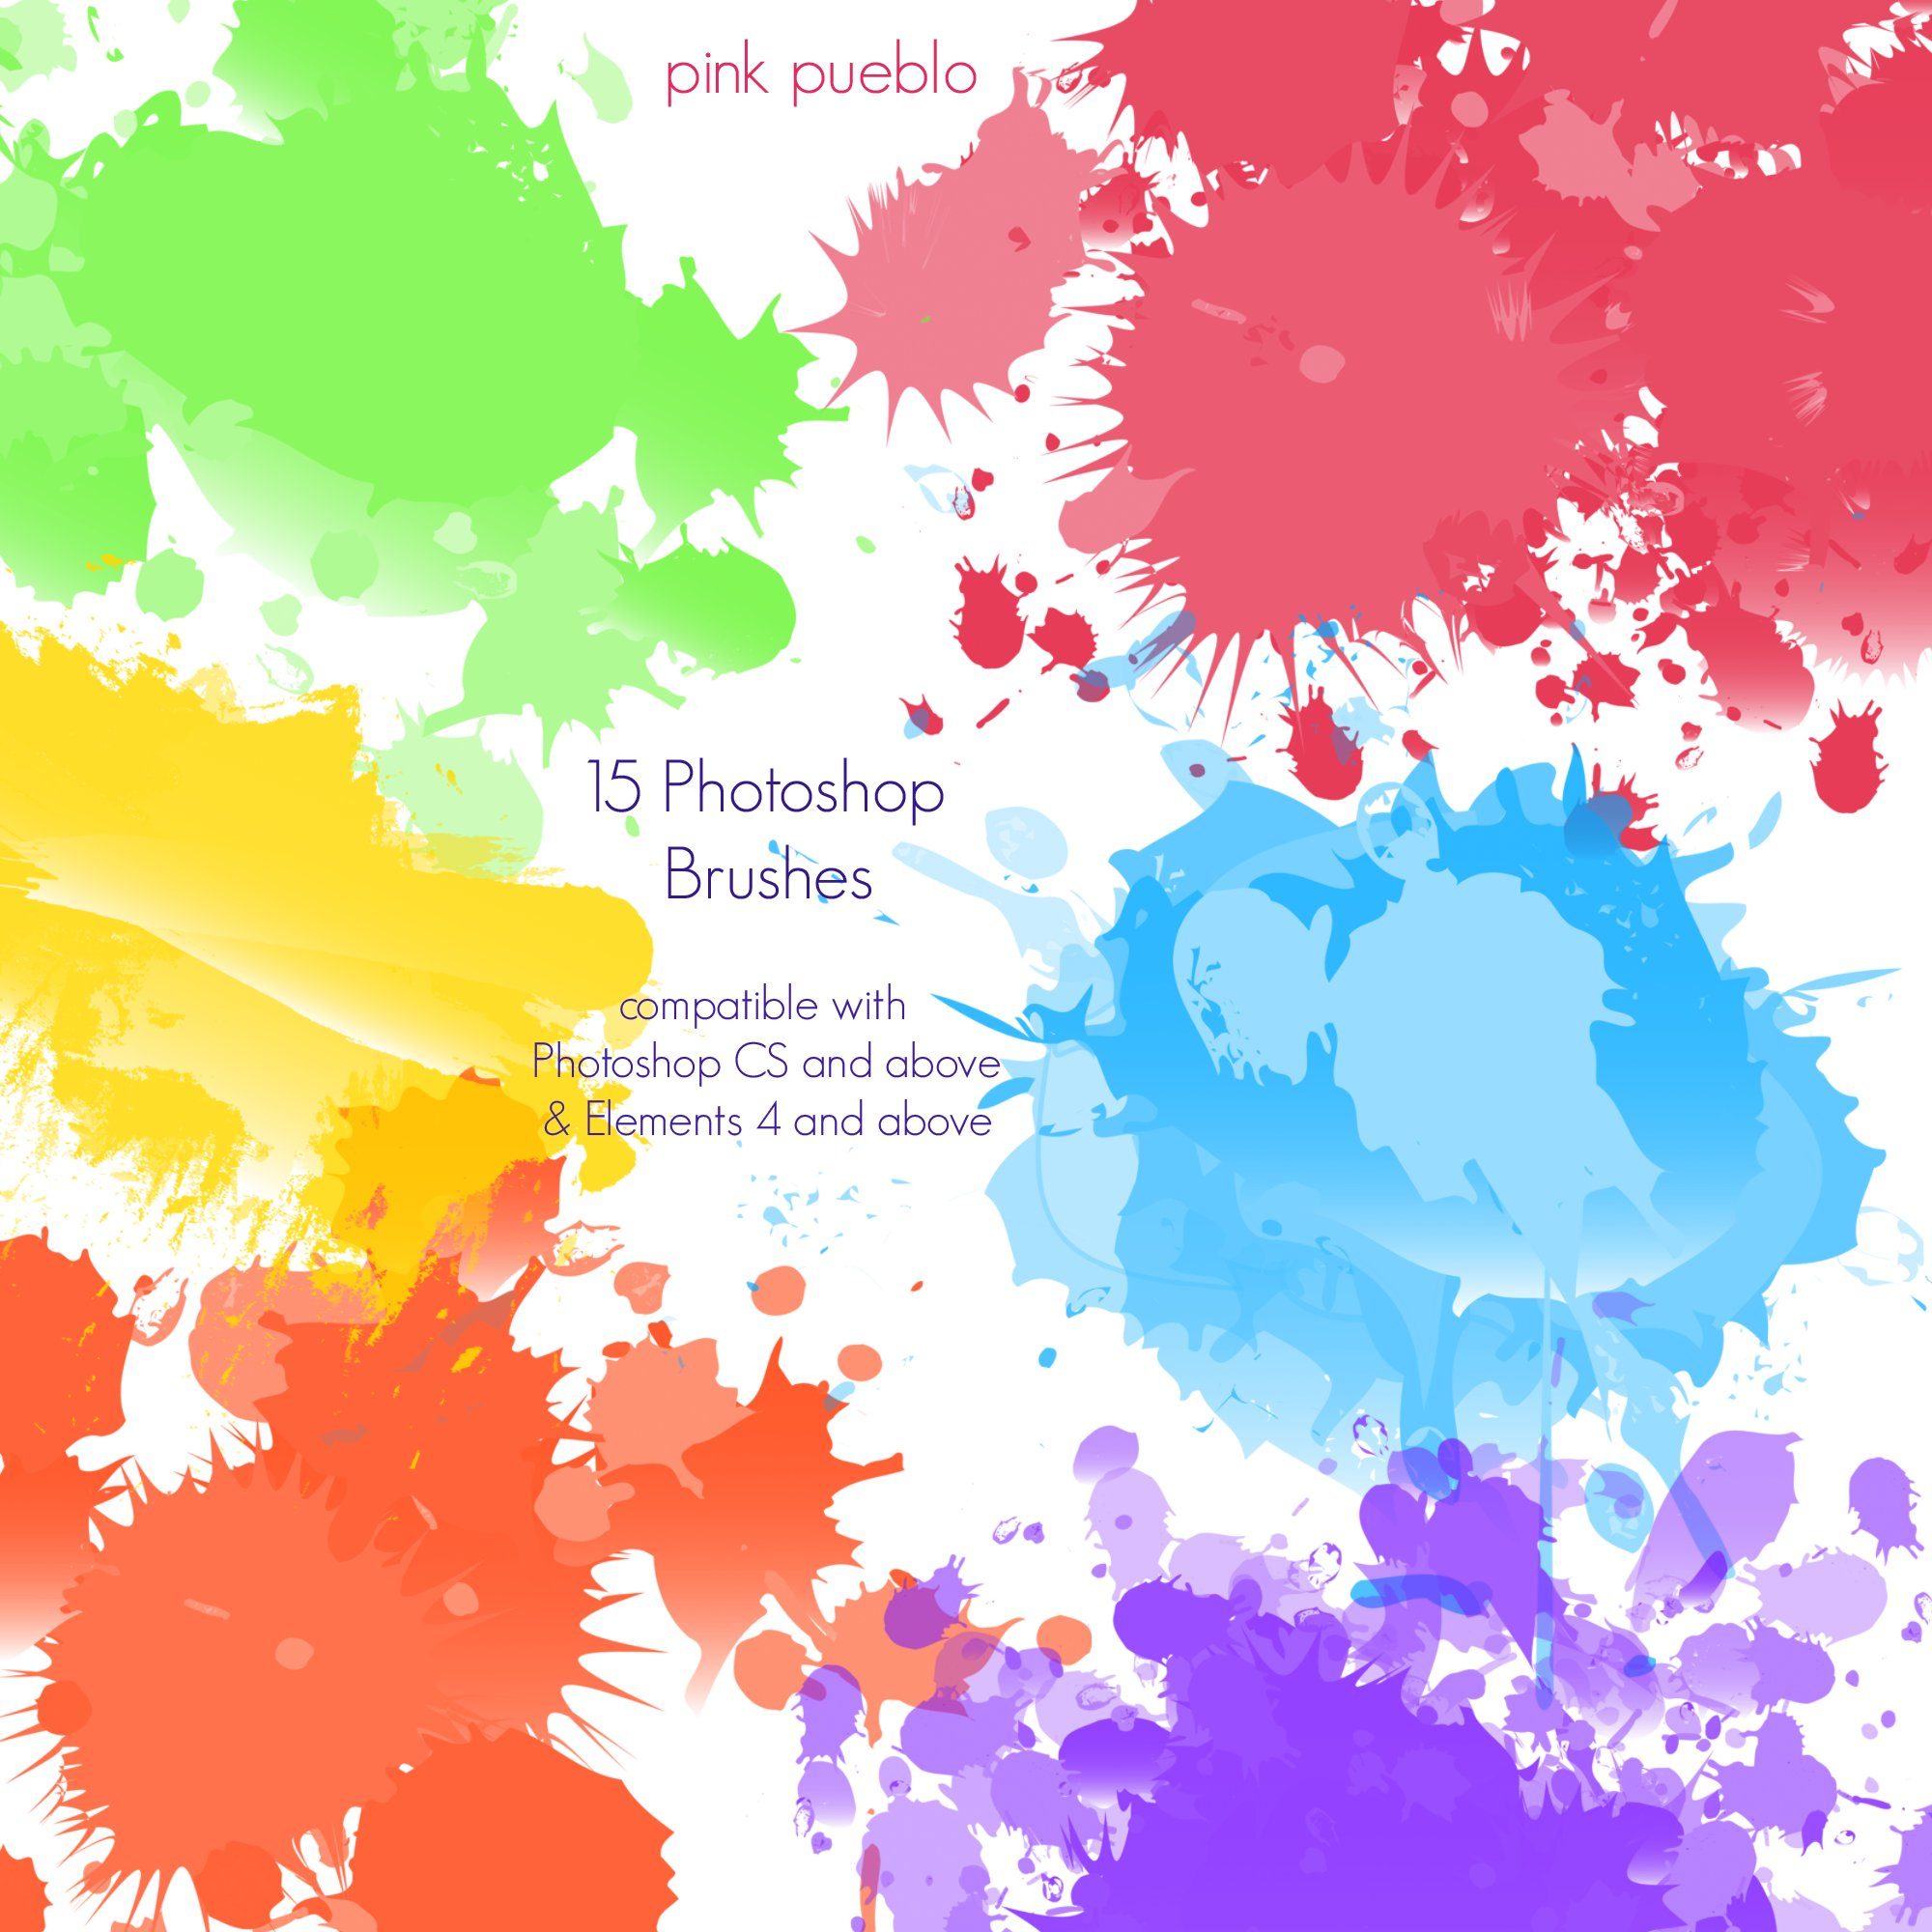 Paint Splatter Brushes for Photoshop 7 are Getting Released